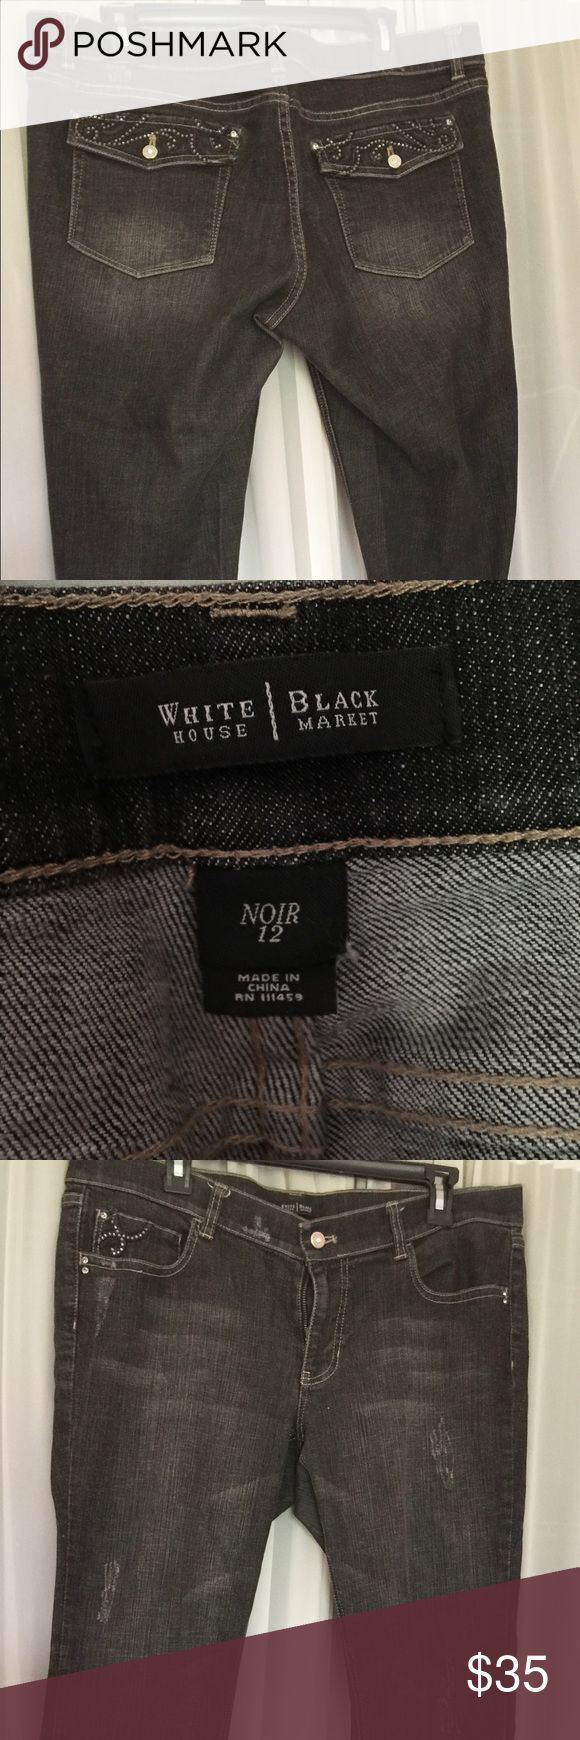 White House Black Market jeans Black bootcut jeans with light distressing and bling on back pockets. Light worn..no rips or stains White House Black Market Pants Boot Cut & Flare